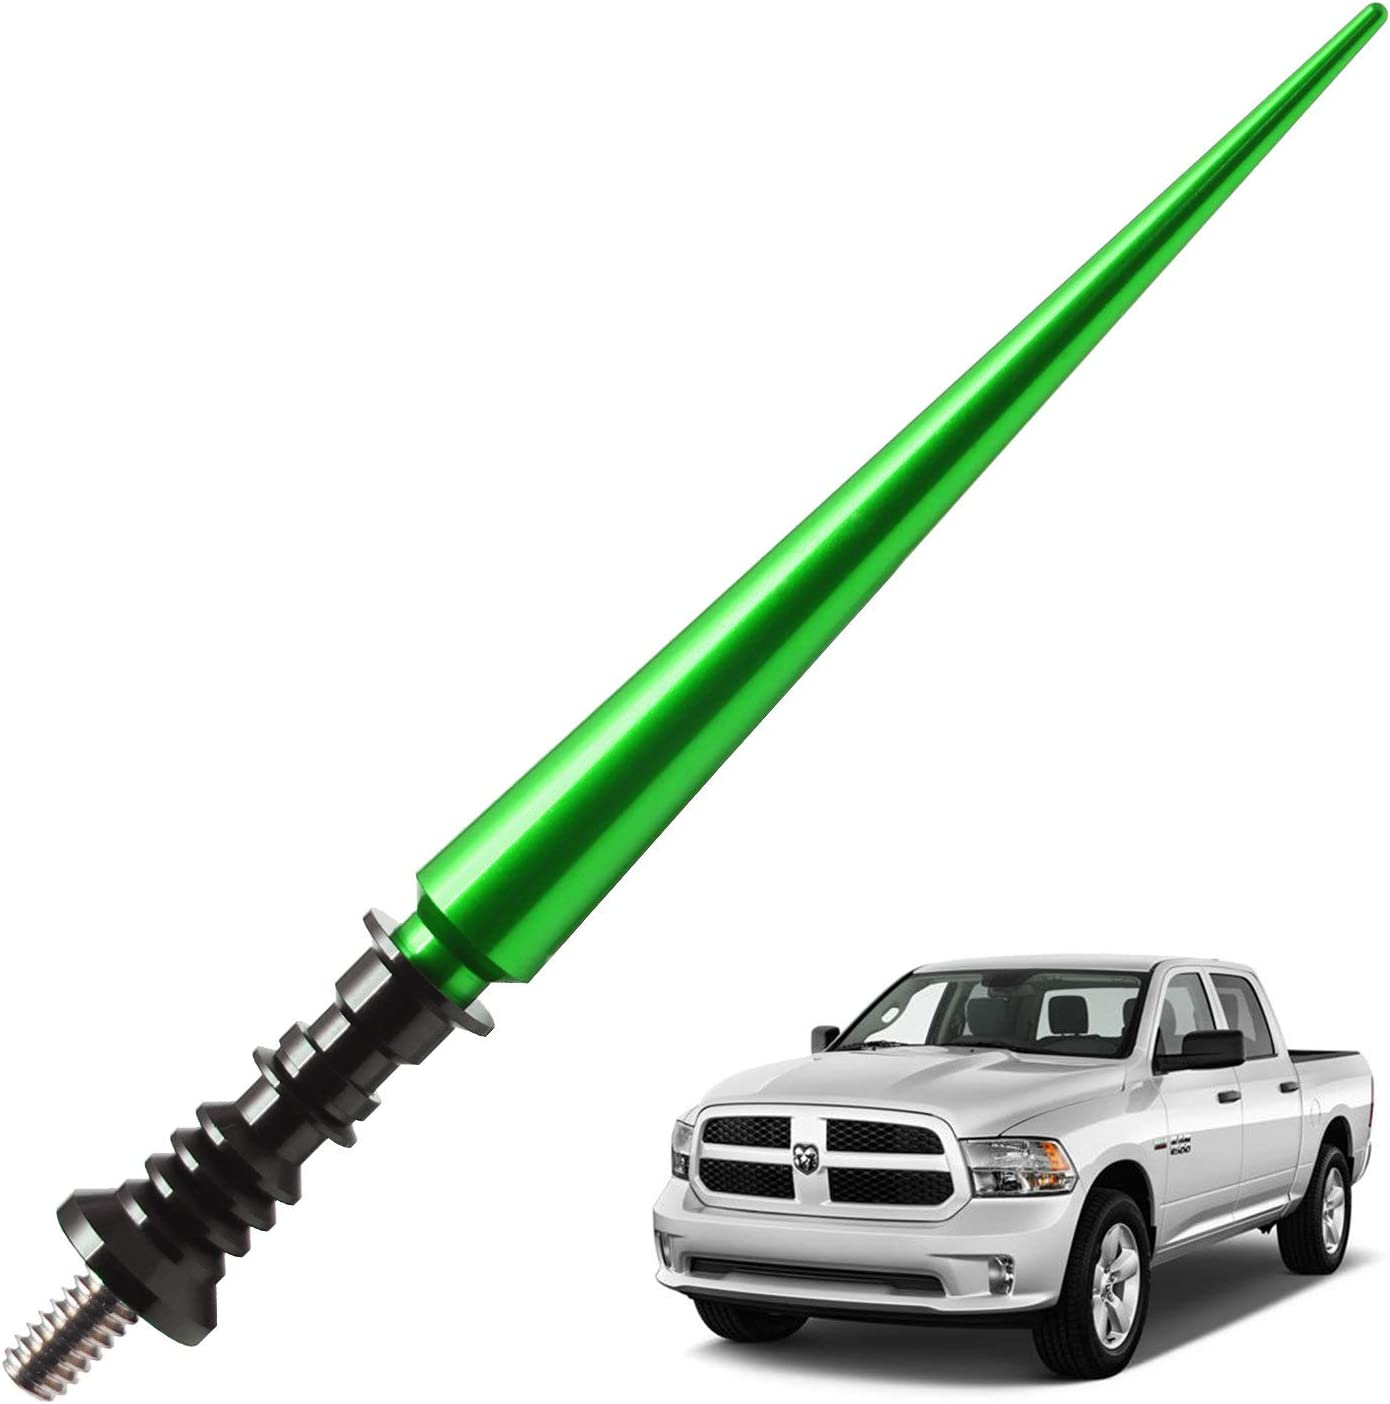 JAPower Replacement Antenna Compatible with Toyota FJ Cruiser 2007-2014 5.25 inches-Green